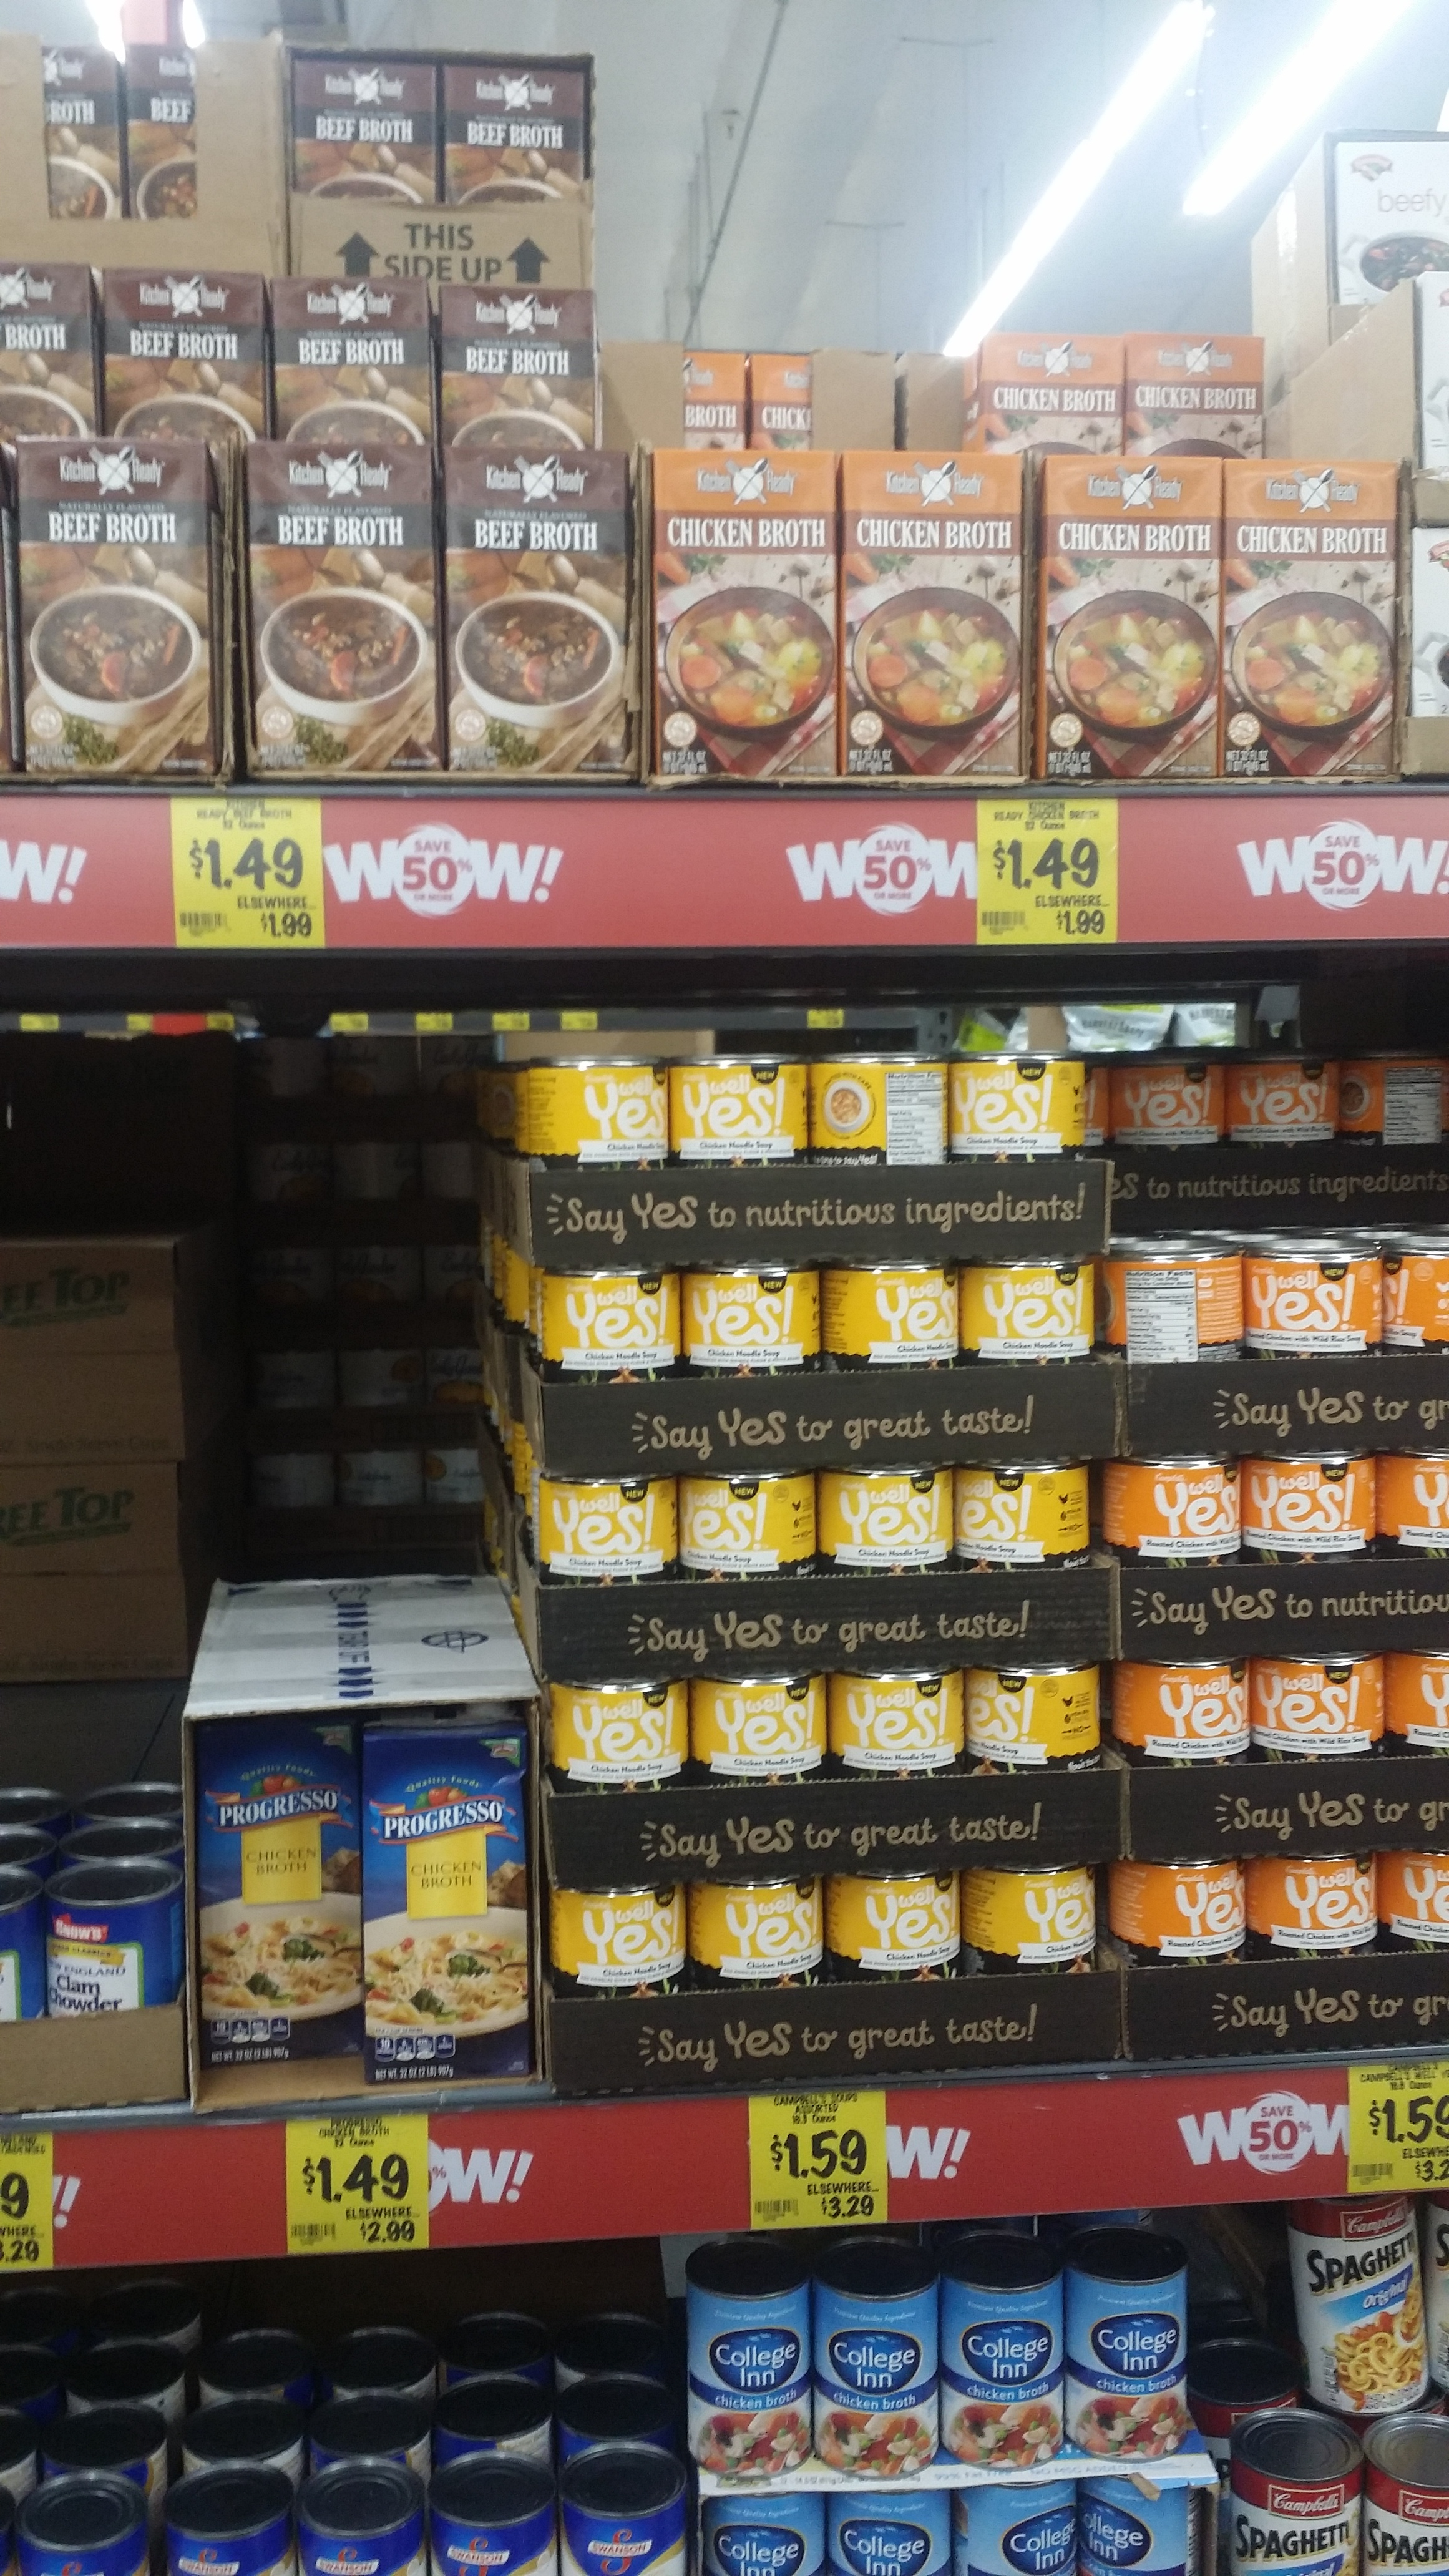 The zero waste grocery store challenge visits grocery outlet from www.goingzerowaste.com